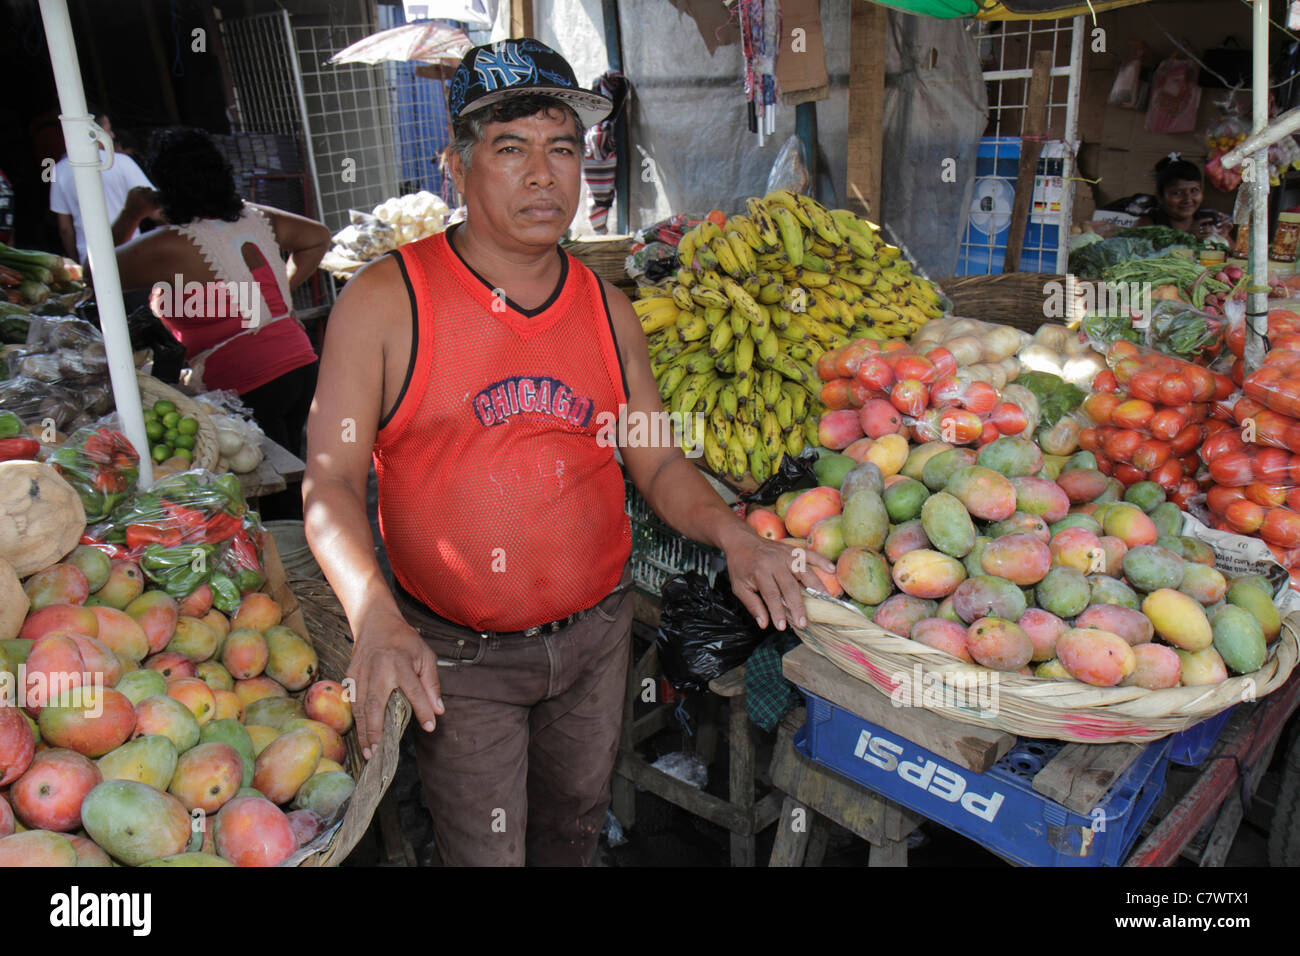 Managua Nicaragua Mercado Oriental flea market marketplace shopping produce stand vegetables fruit vendor merchant - Stock Image